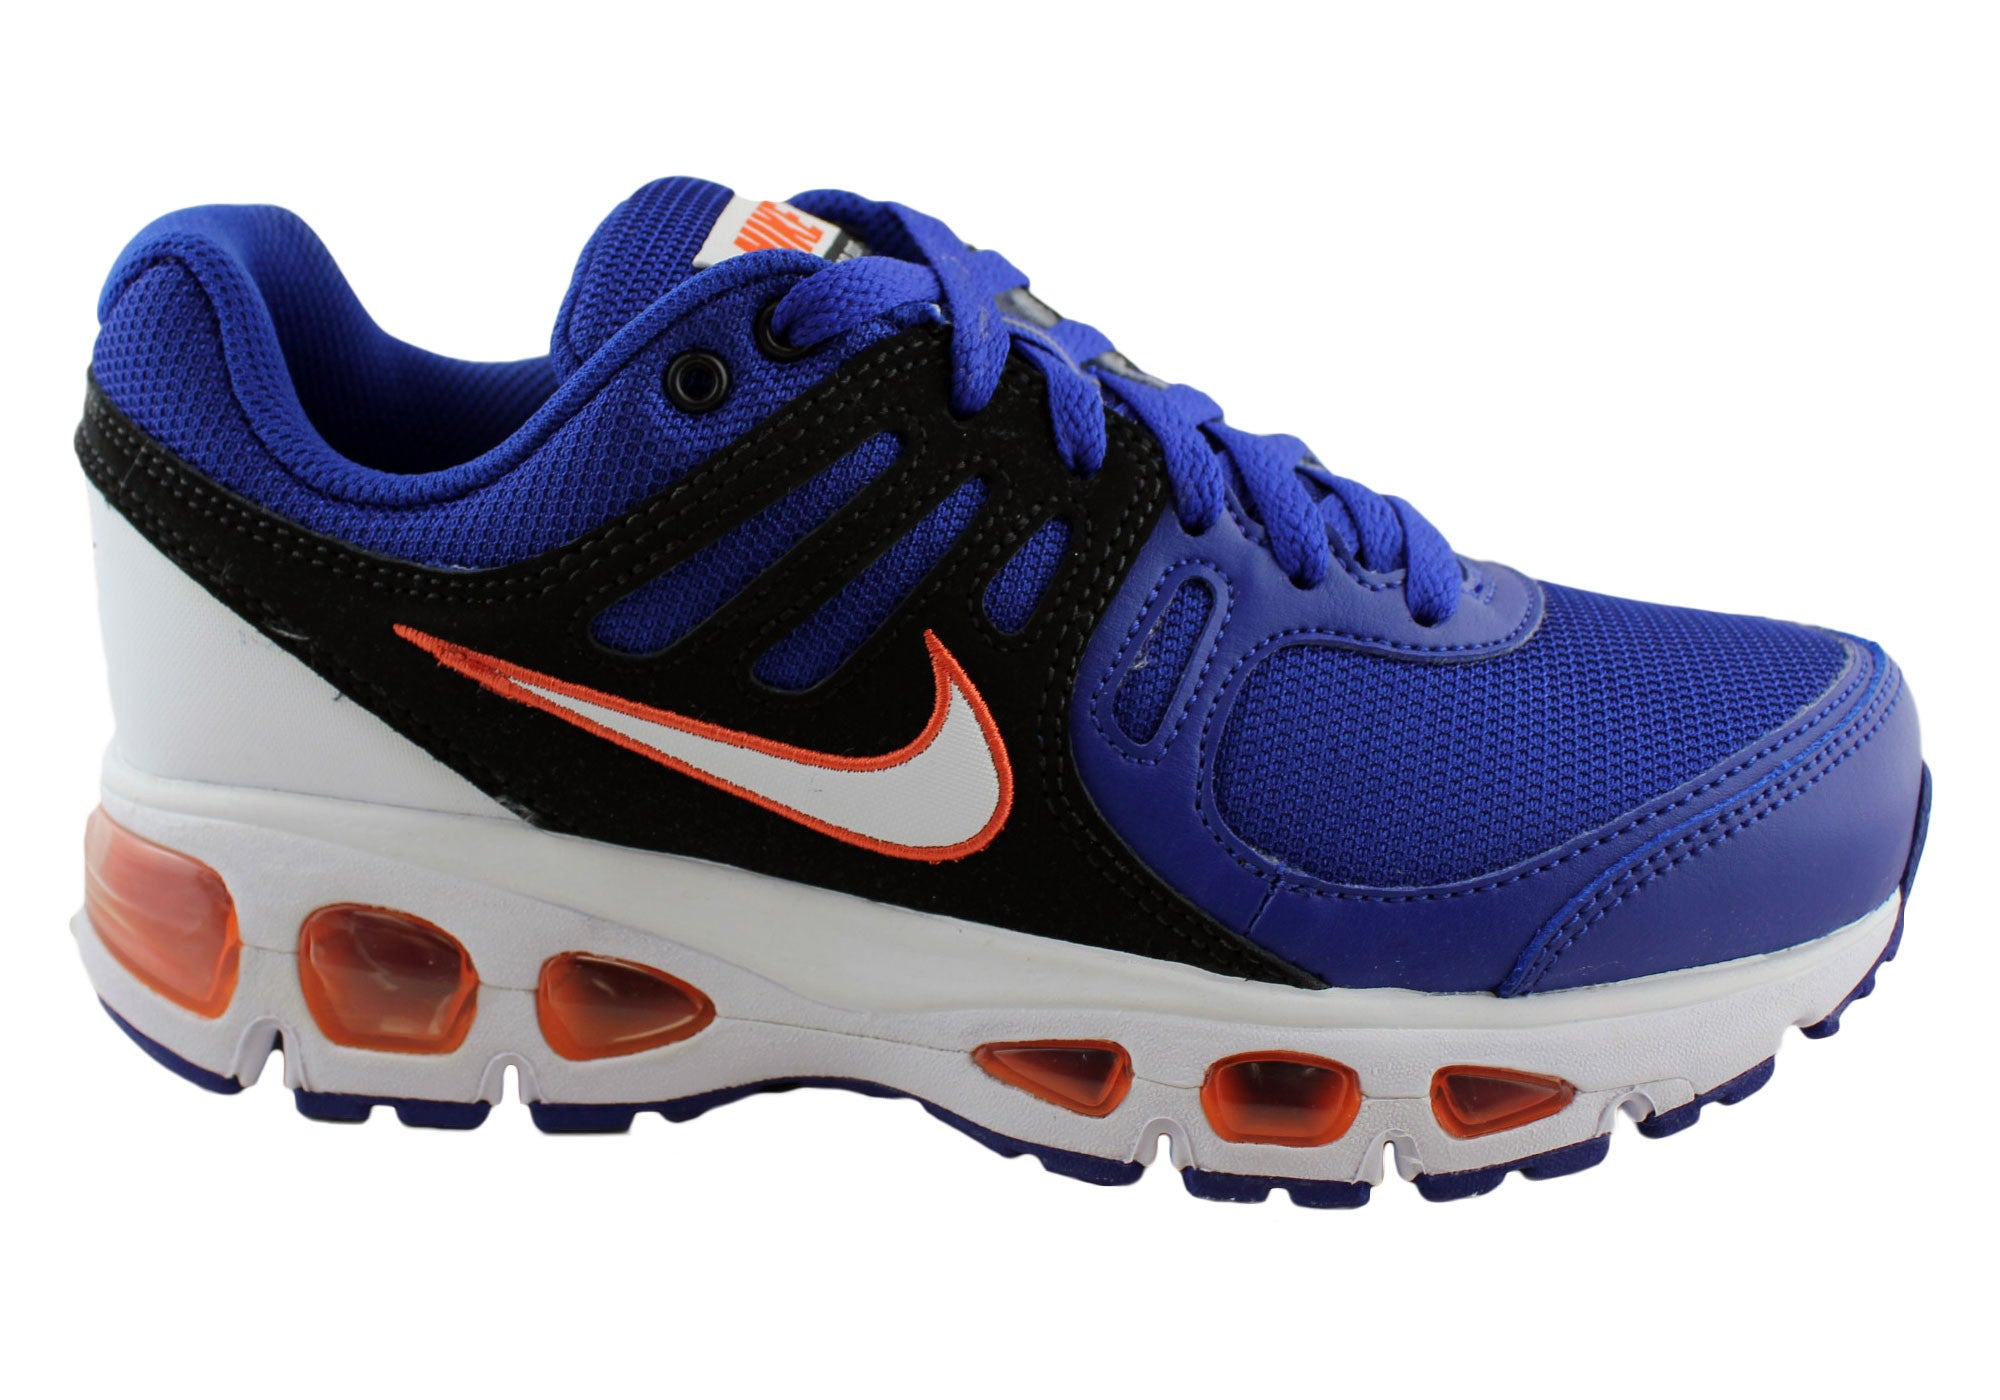 Misterioso Asimilación Vigilante  Nike Tailwind 2010 (GS) Older Kids Sneakers | Brand House Direct